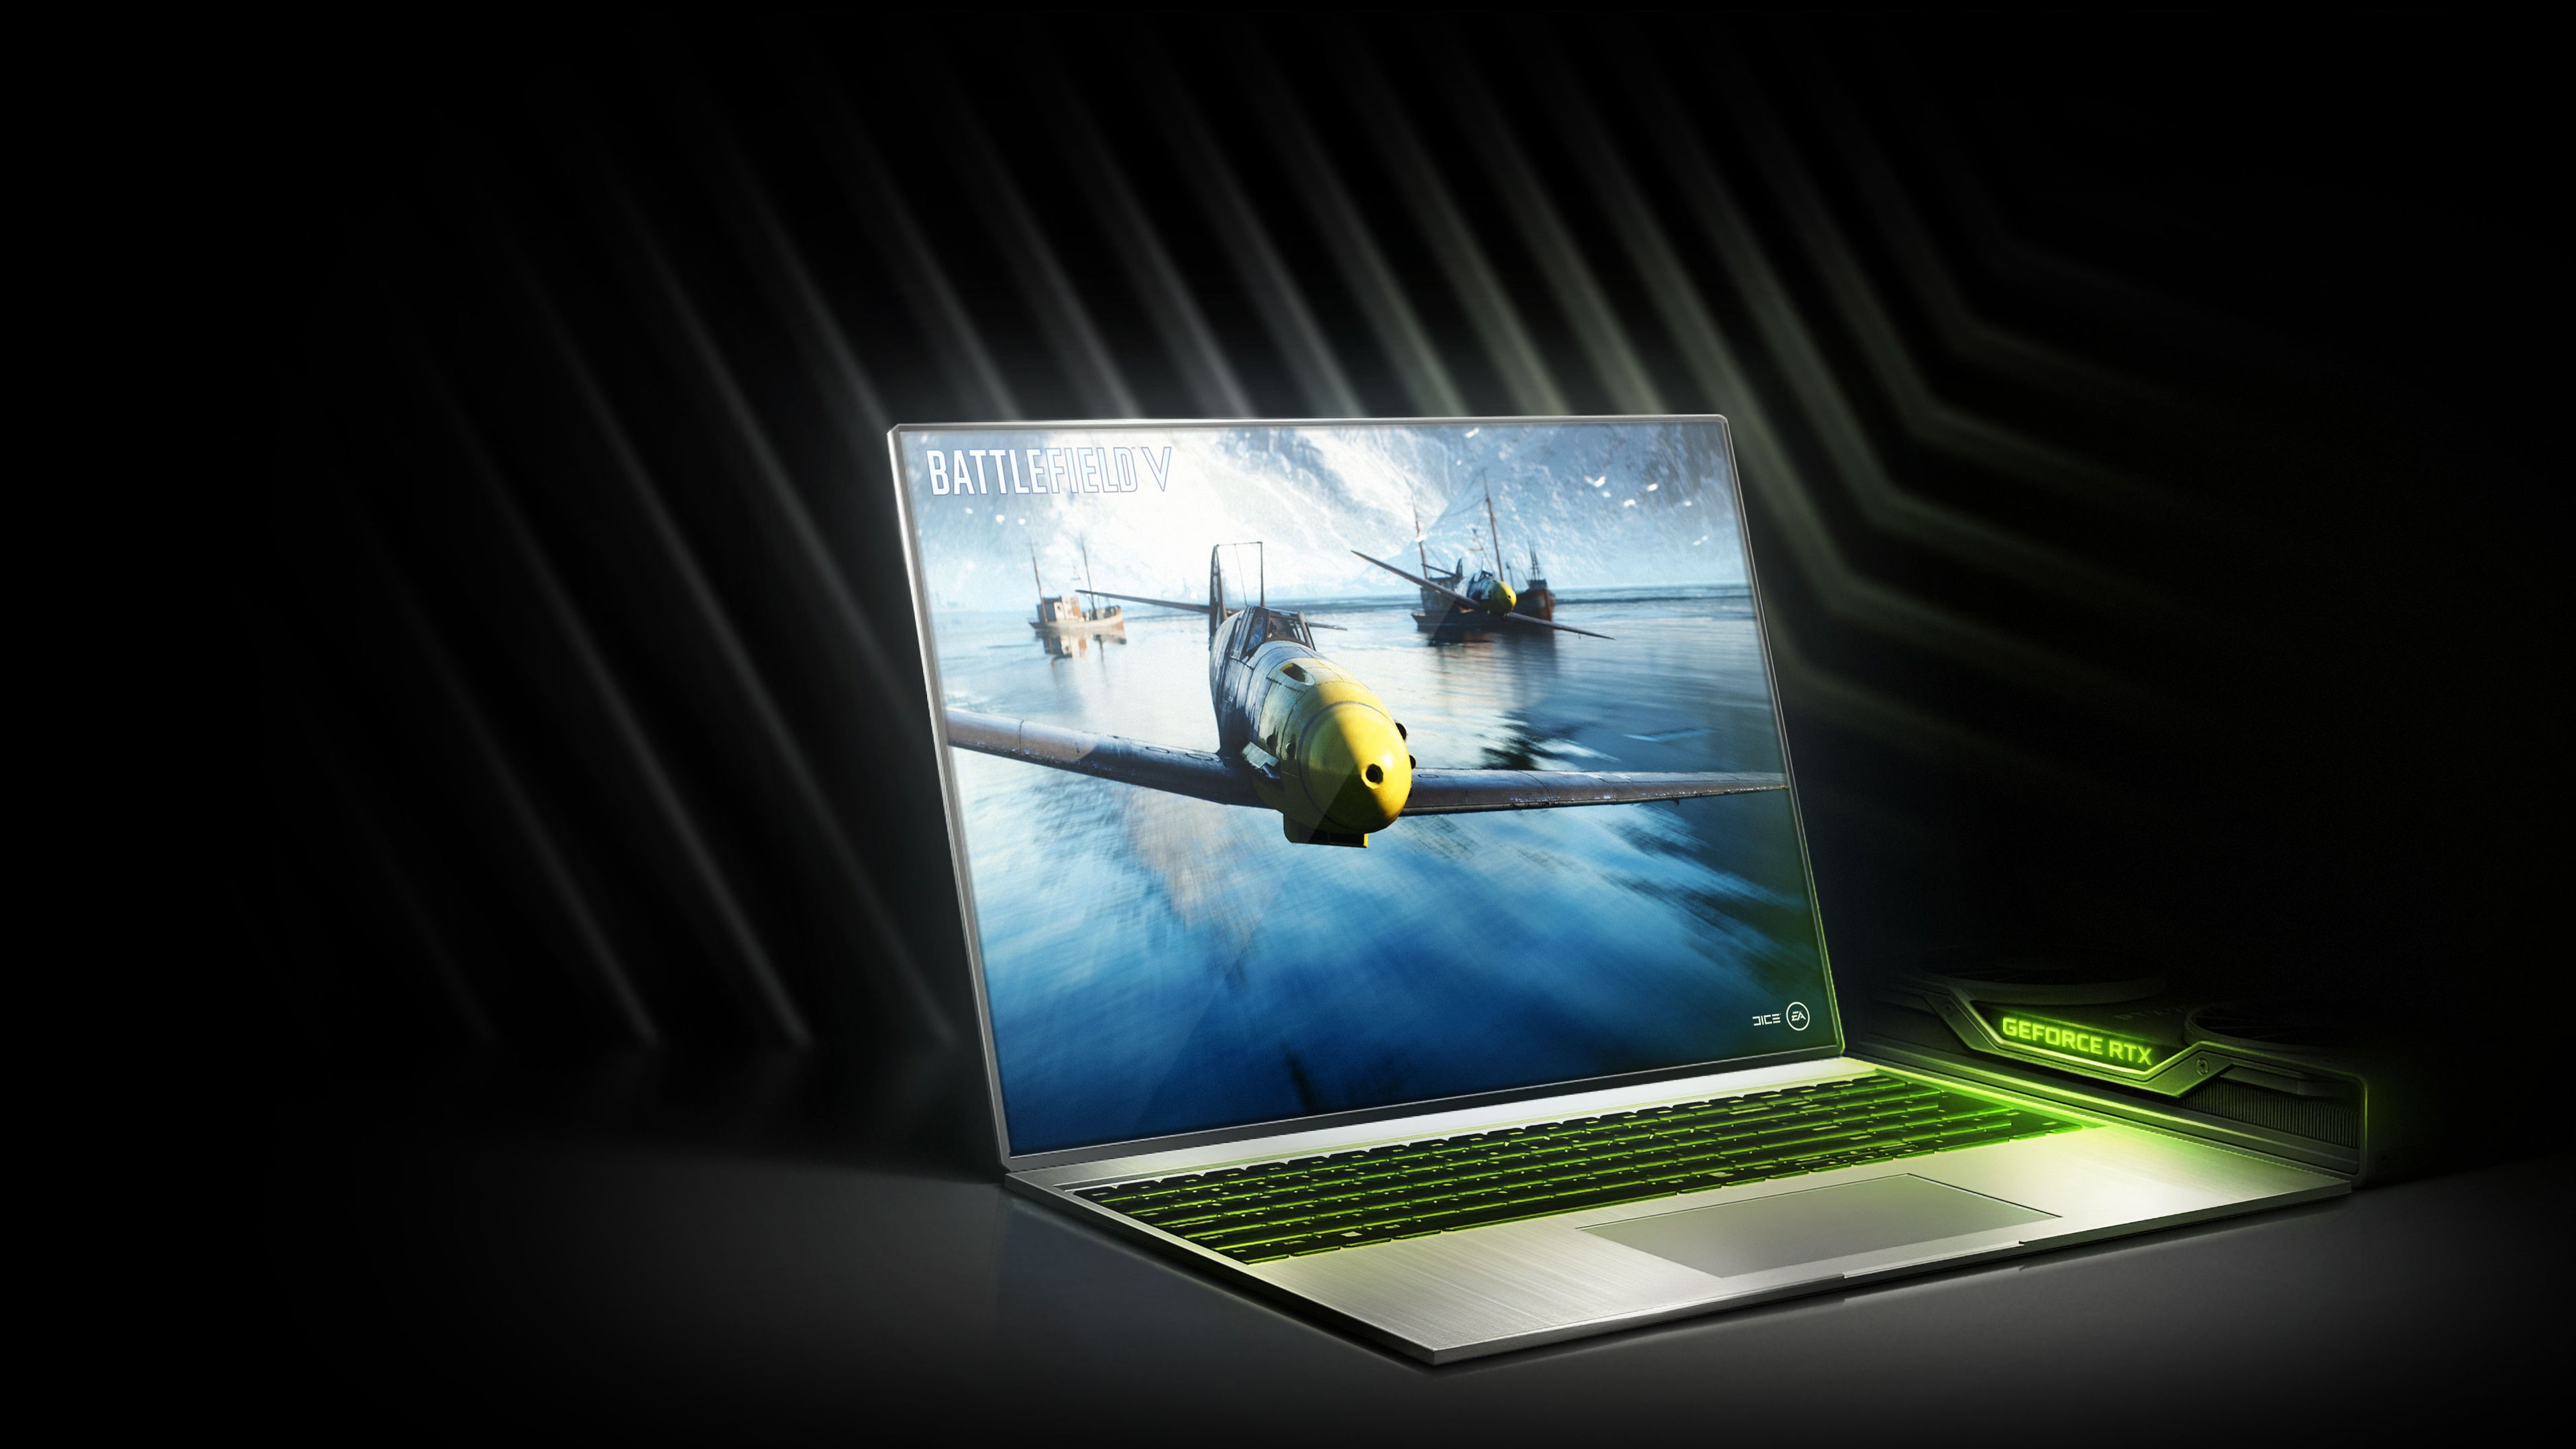 Will Nvidia Get A Boost From New Gaming Laptops The Motley Fool